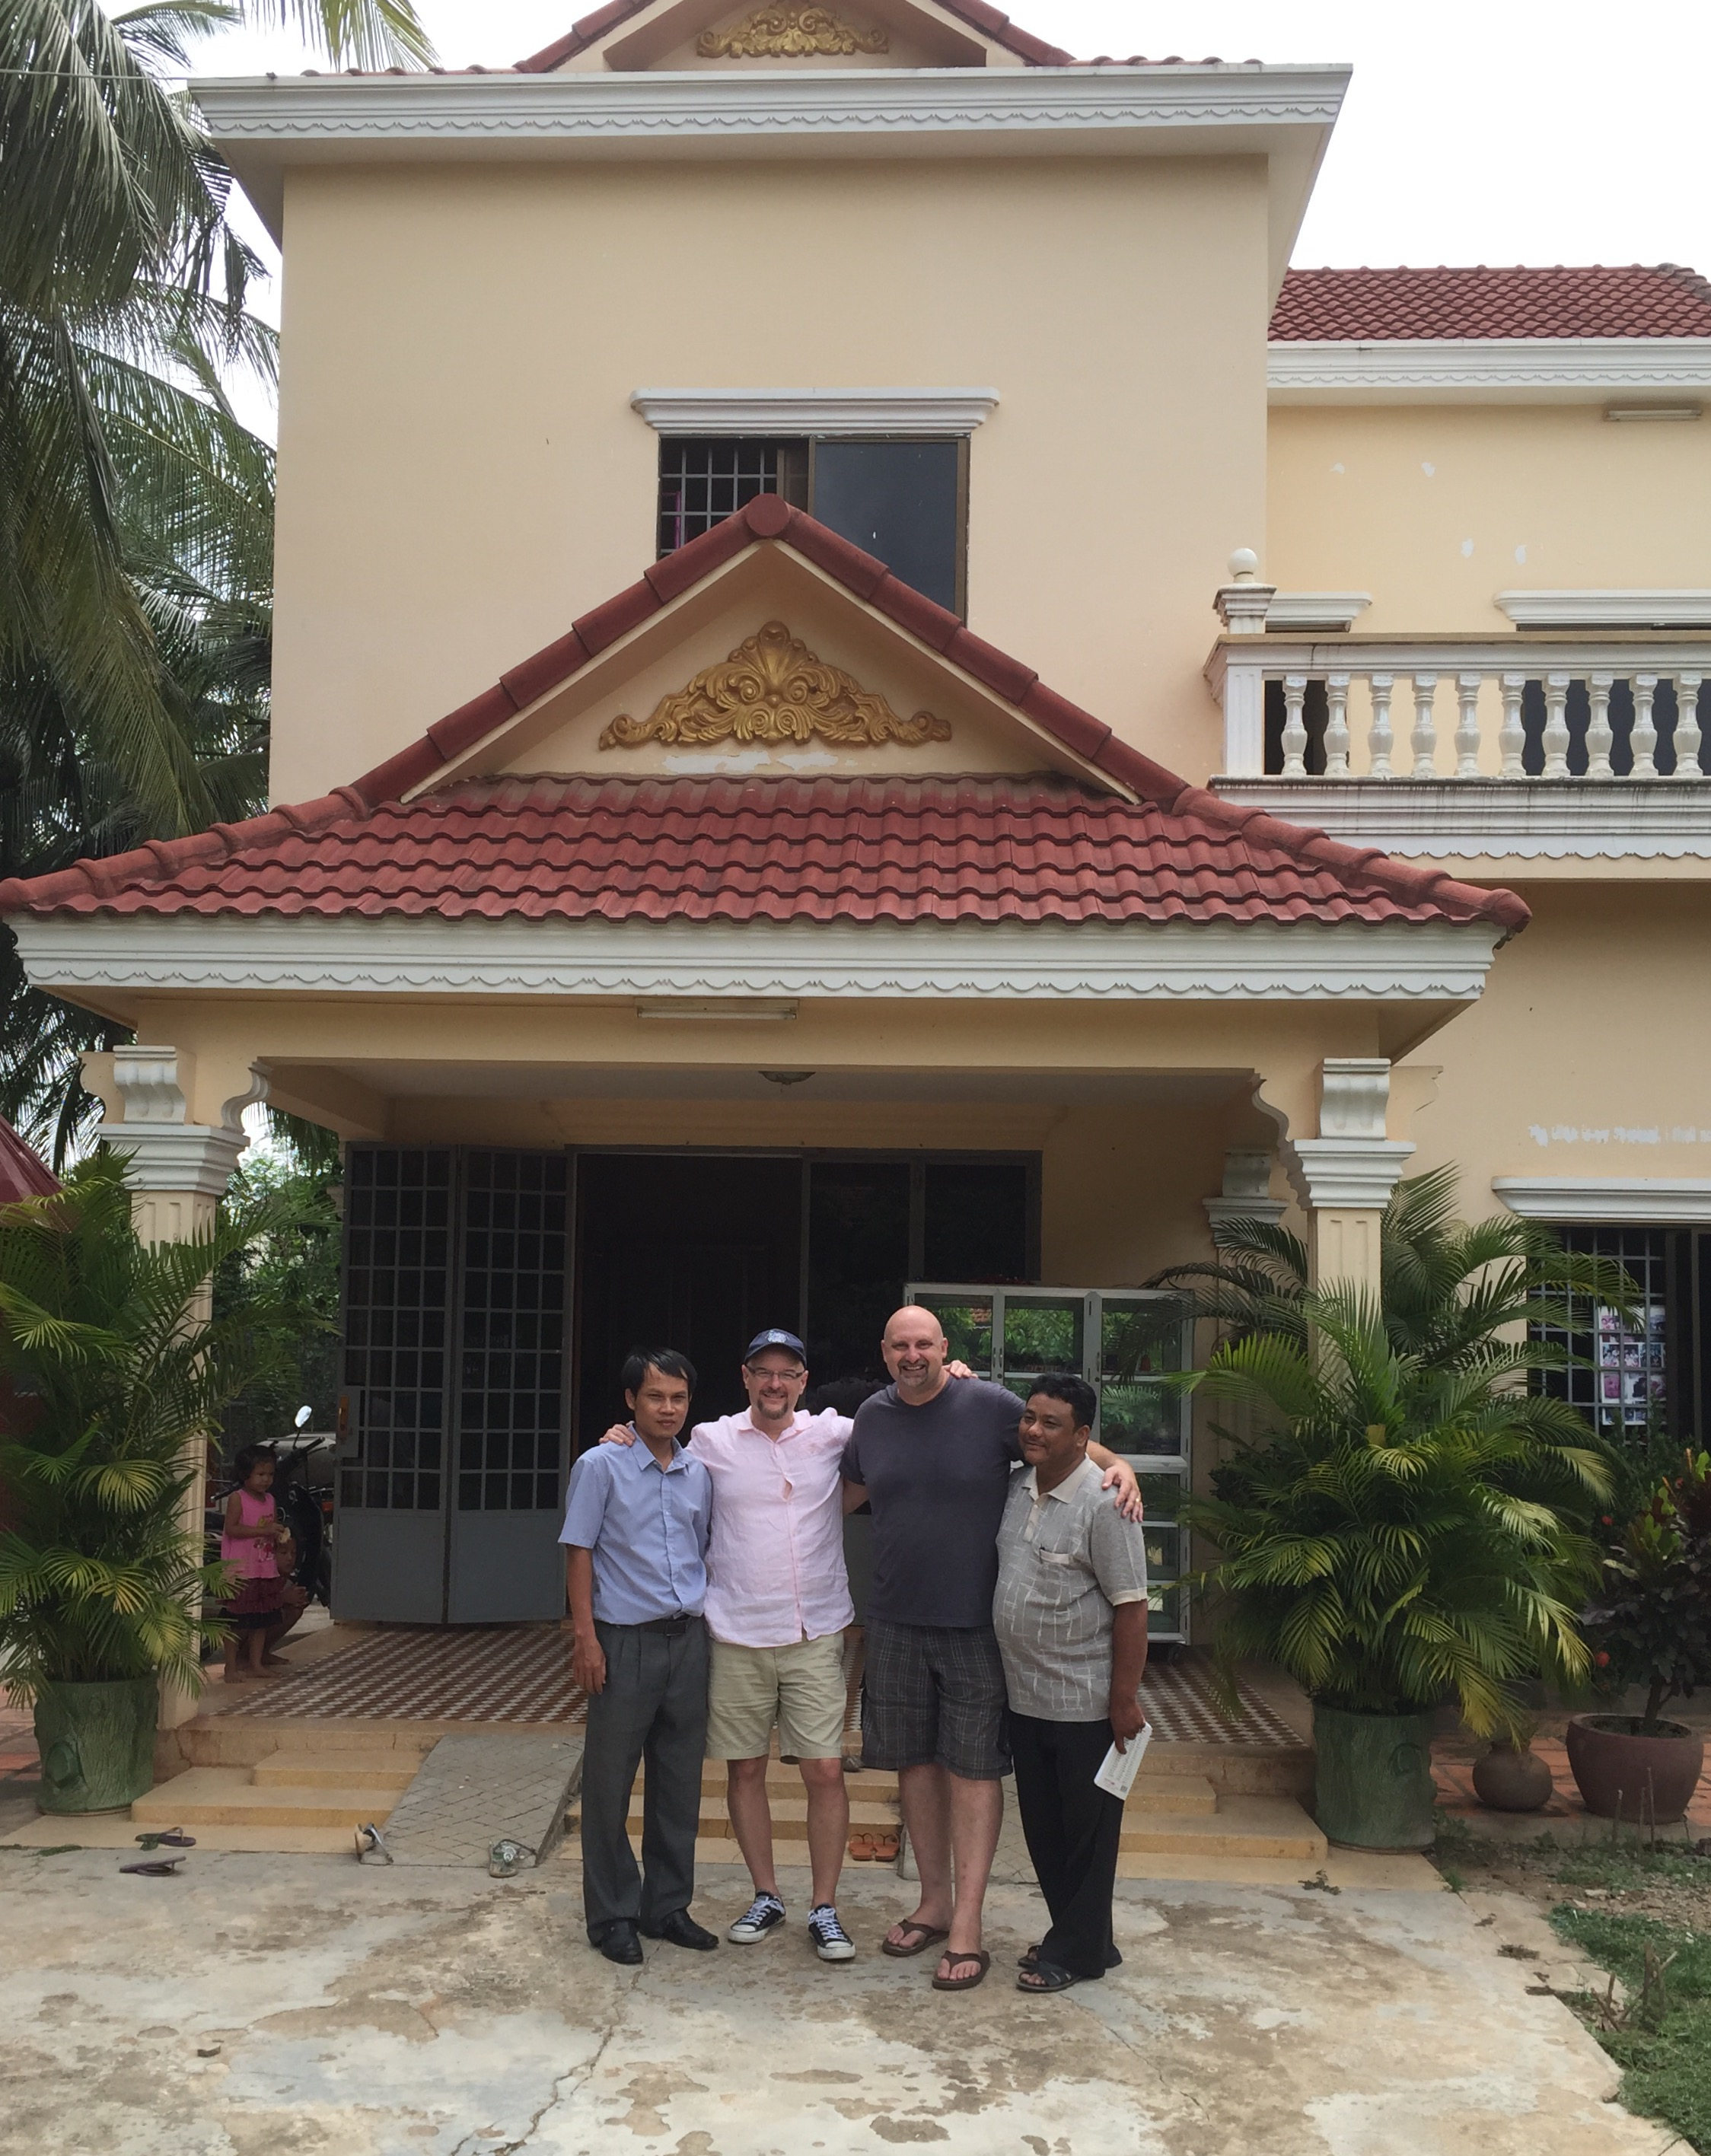 PK, John, Mark and Tong in front of the Esther's House facility